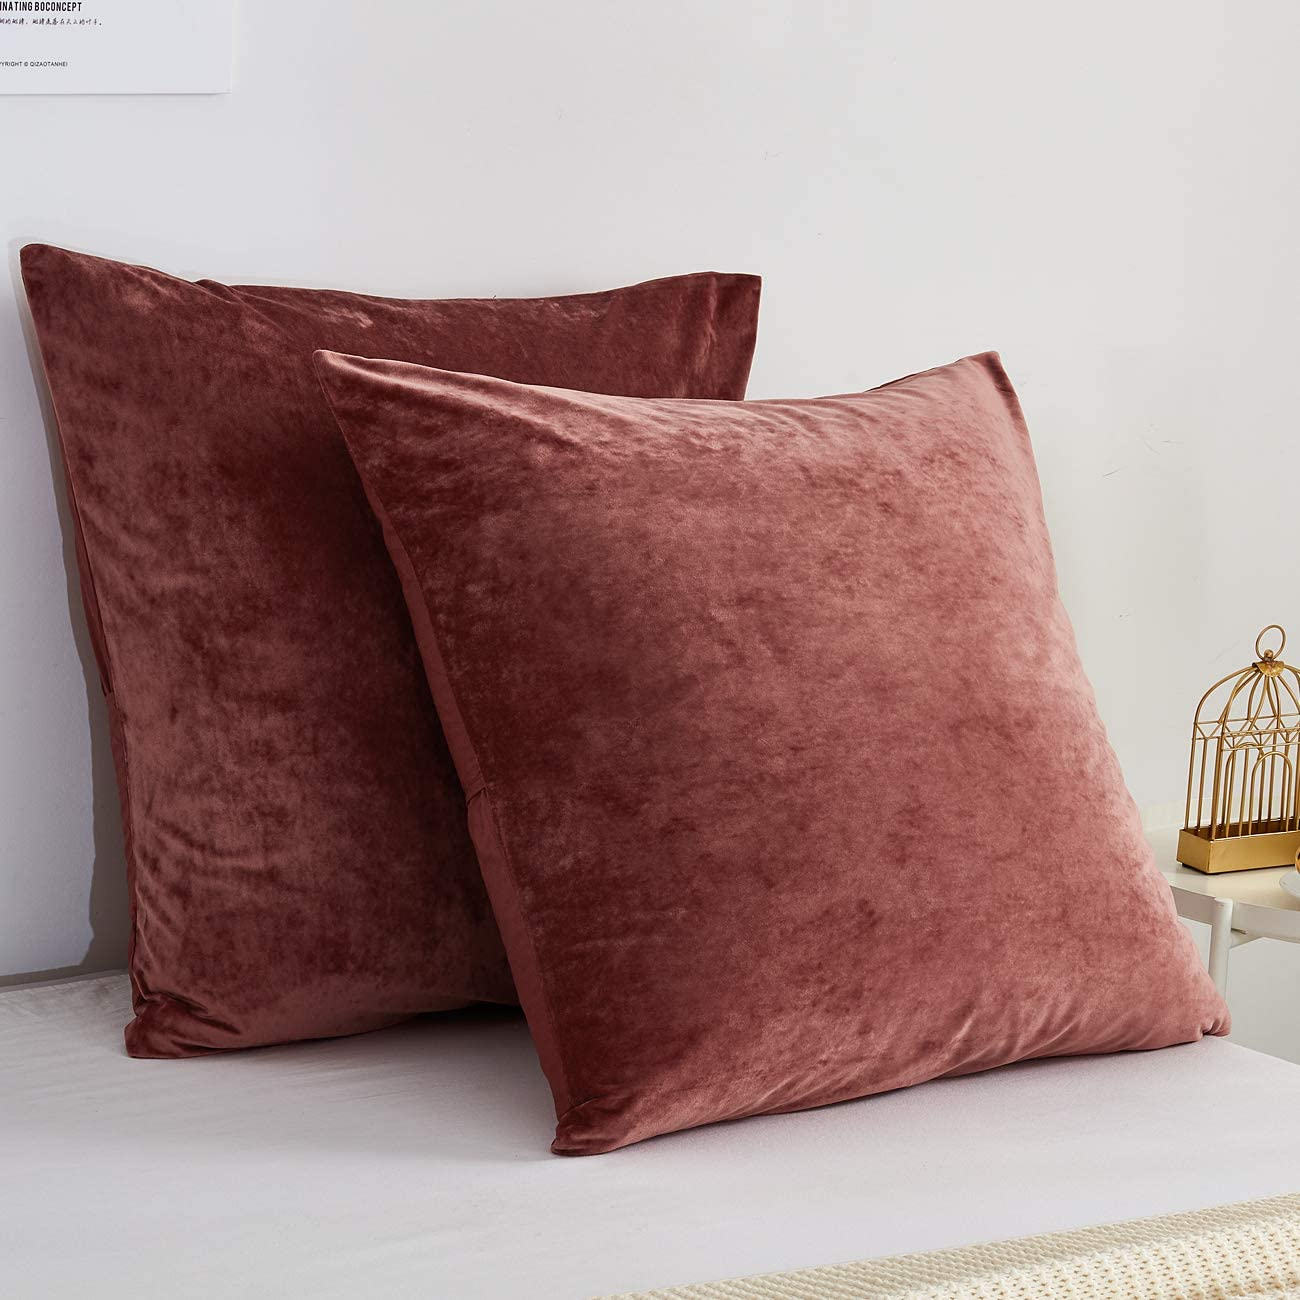 Amazon Com Phf Velvet Euro Sham Set Of 2 26 X 26 Soft Solid Home Decorative Euro Throw Pillow Covers For Couch Sofa Bed No Filling Burgundy Home Kitchen